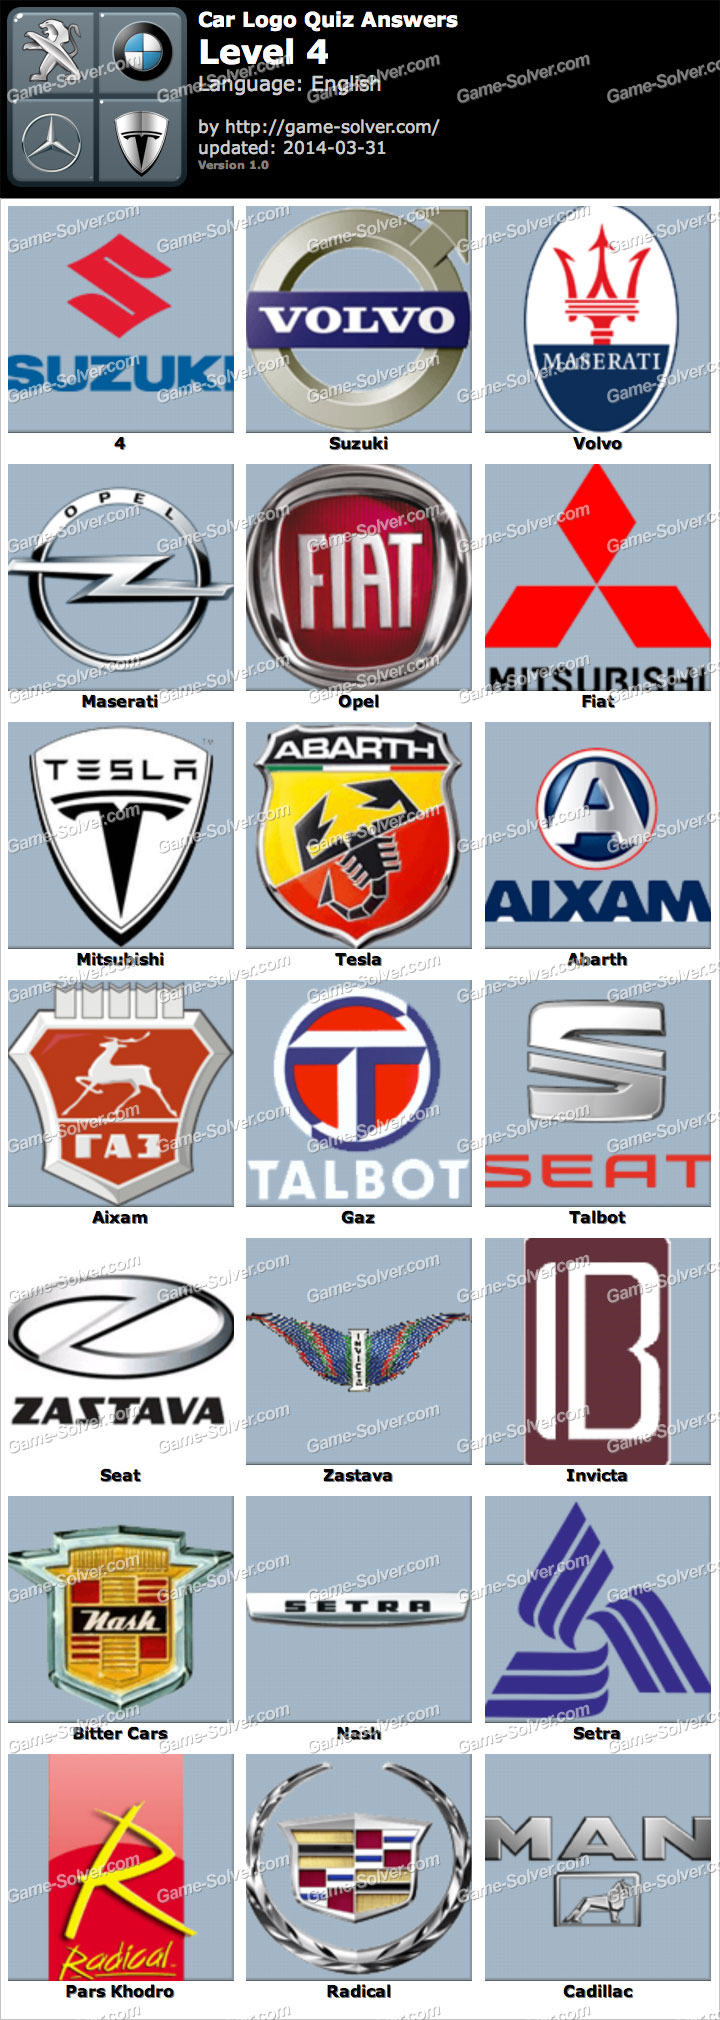 Car Logo Quiz Level 4